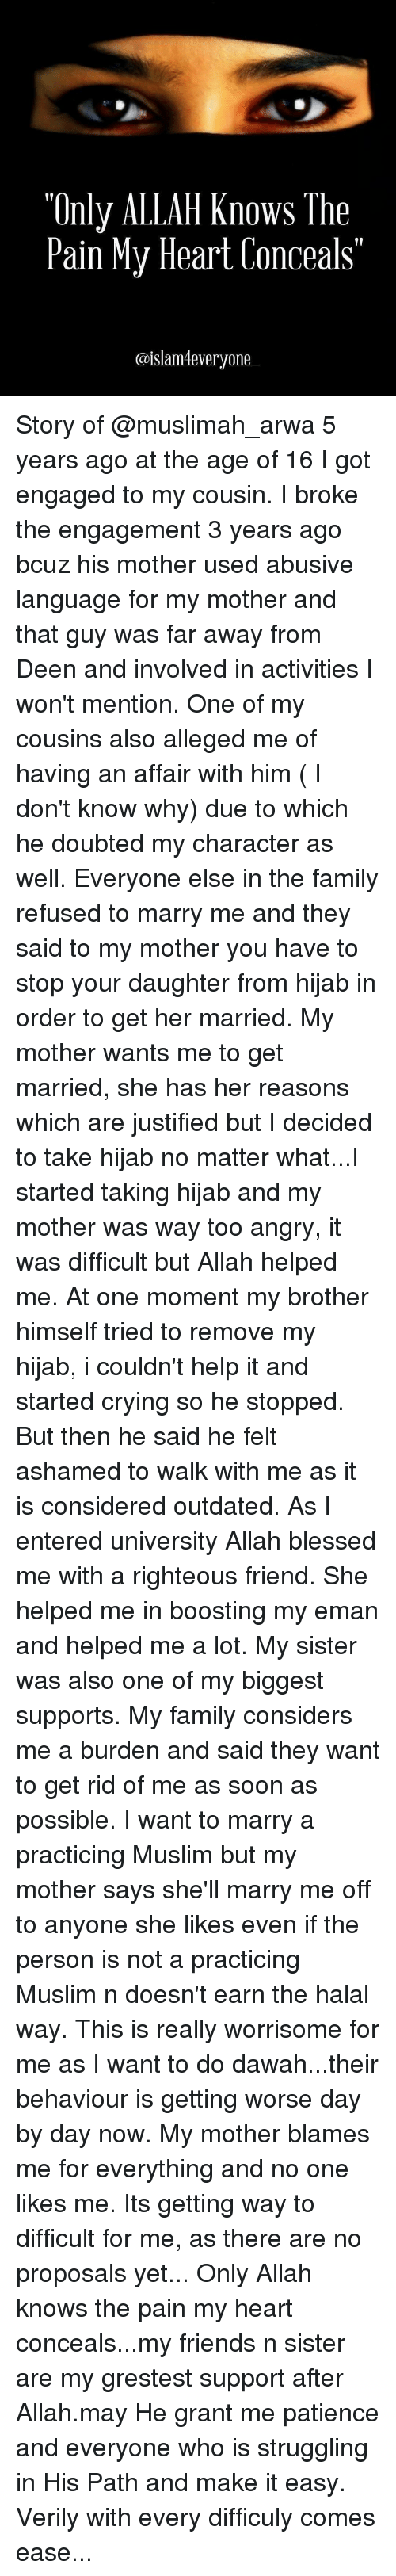 Memes, Boost, and Justified: Only ALLAH knows he  Pain My Heart Conceals  aislamileveryone Story of @muslimah_arwa 5 years ago at the age of 16 I got engaged to my cousin. I broke the engagement 3 years ago bcuz his mother used abusive language for my mother and that guy was far away from Deen and involved in activities I won't mention. One of my cousins also alleged me of having an affair with him ( I don't know why) due to which he doubted my character as well. Everyone else in the family refused to marry me and they said to my mother you have to stop your daughter from hijab in order to get her married. My mother wants me to get married, she has her reasons which are justified but I decided to take hijab no matter what...I started taking hijab and my mother was way too angry, it was difficult but Allah helped me. At one moment my brother himself tried to remove my hijab, i couldn't help it and started crying so he stopped. But then he said he felt ashamed to walk with me as it is considered outdated. As I entered university Allah blessed me with a righteous friend. She helped me in boosting my eman and helped me a lot. My sister was also one of my biggest supports. My family considers me a burden and said they want to get rid of me as soon as possible. I want to marry a practicing Muslim but my mother says she'll marry me off to anyone she likes even if the person is not a practicing Muslim n doesn't earn the halal way. This is really worrisome for me as I want to do dawah...their behaviour is getting worse day by day now. My mother blames me for everything and no one likes me. Its getting way to difficult for me, as there are no proposals yet... Only Allah knows the pain my heart conceals...my friends n sister are my grestest support after Allah.may He grant me patience and everyone who is struggling in His Path and make it easy. Verily with every difficuly comes ease...